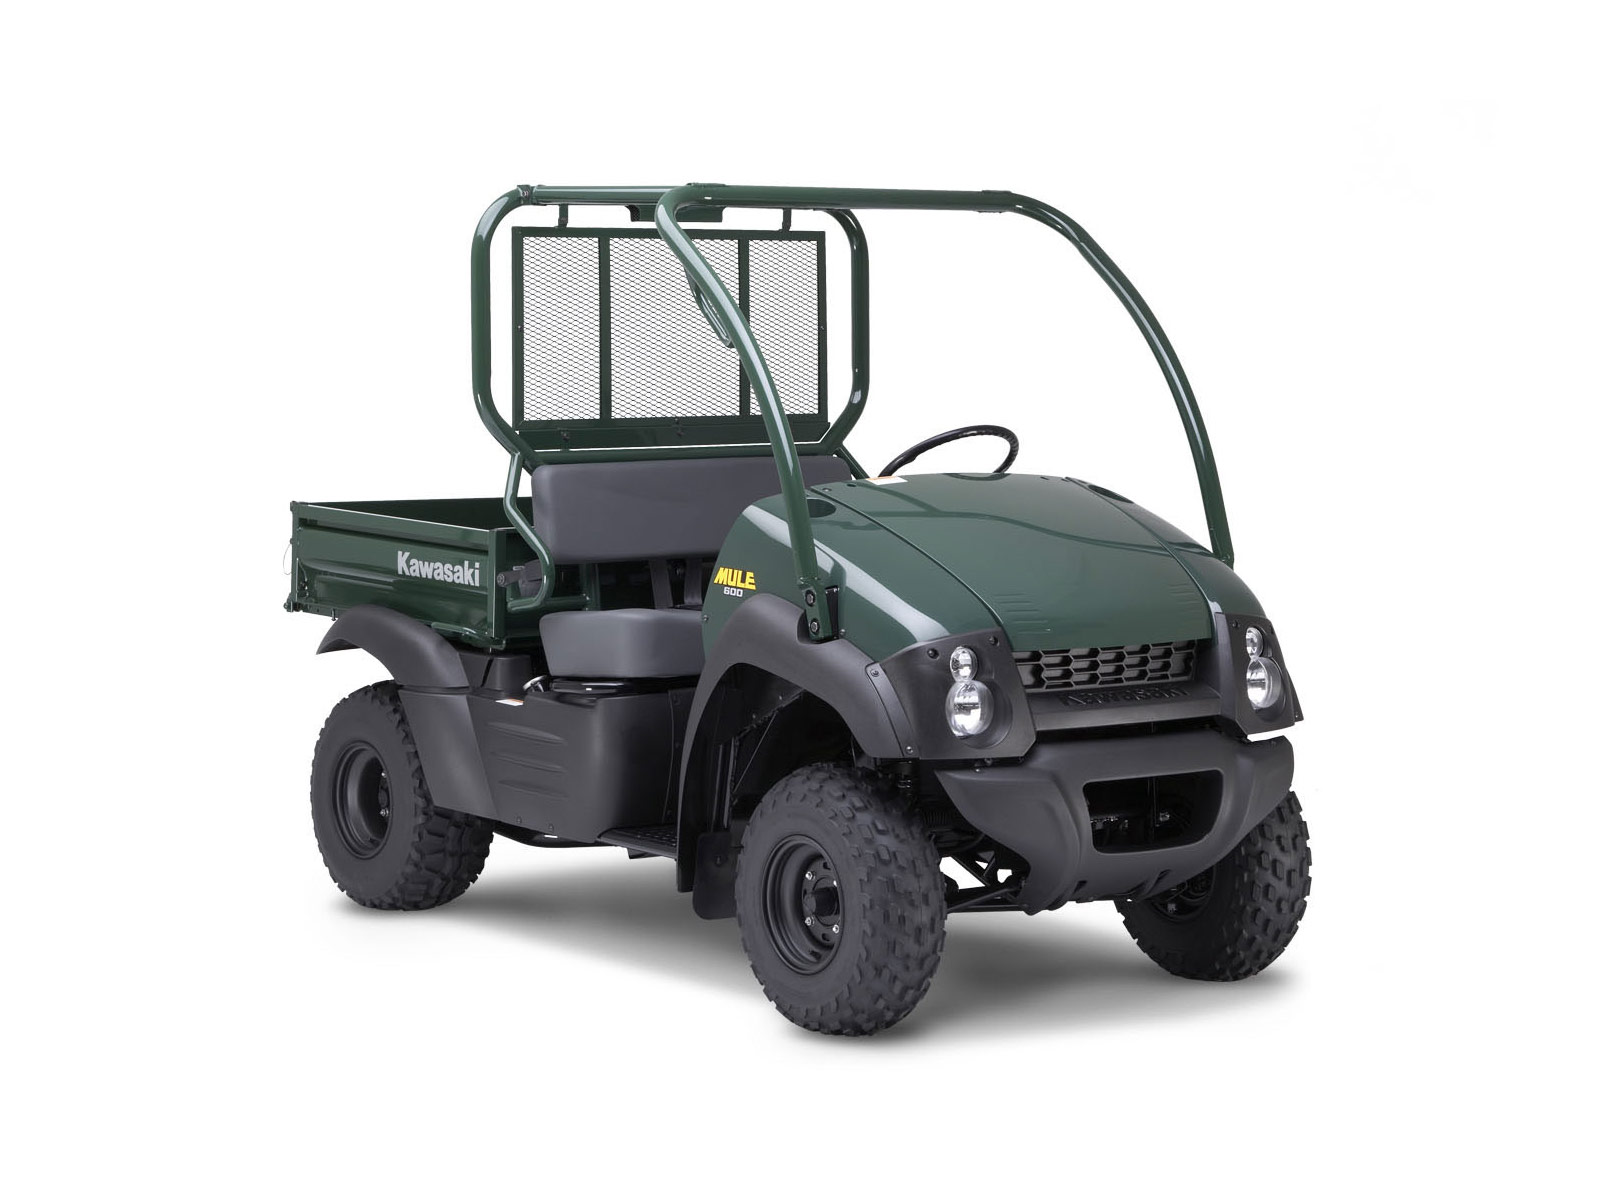 Kawasaki Mule 600 Atv Pictures 2009 Specifications